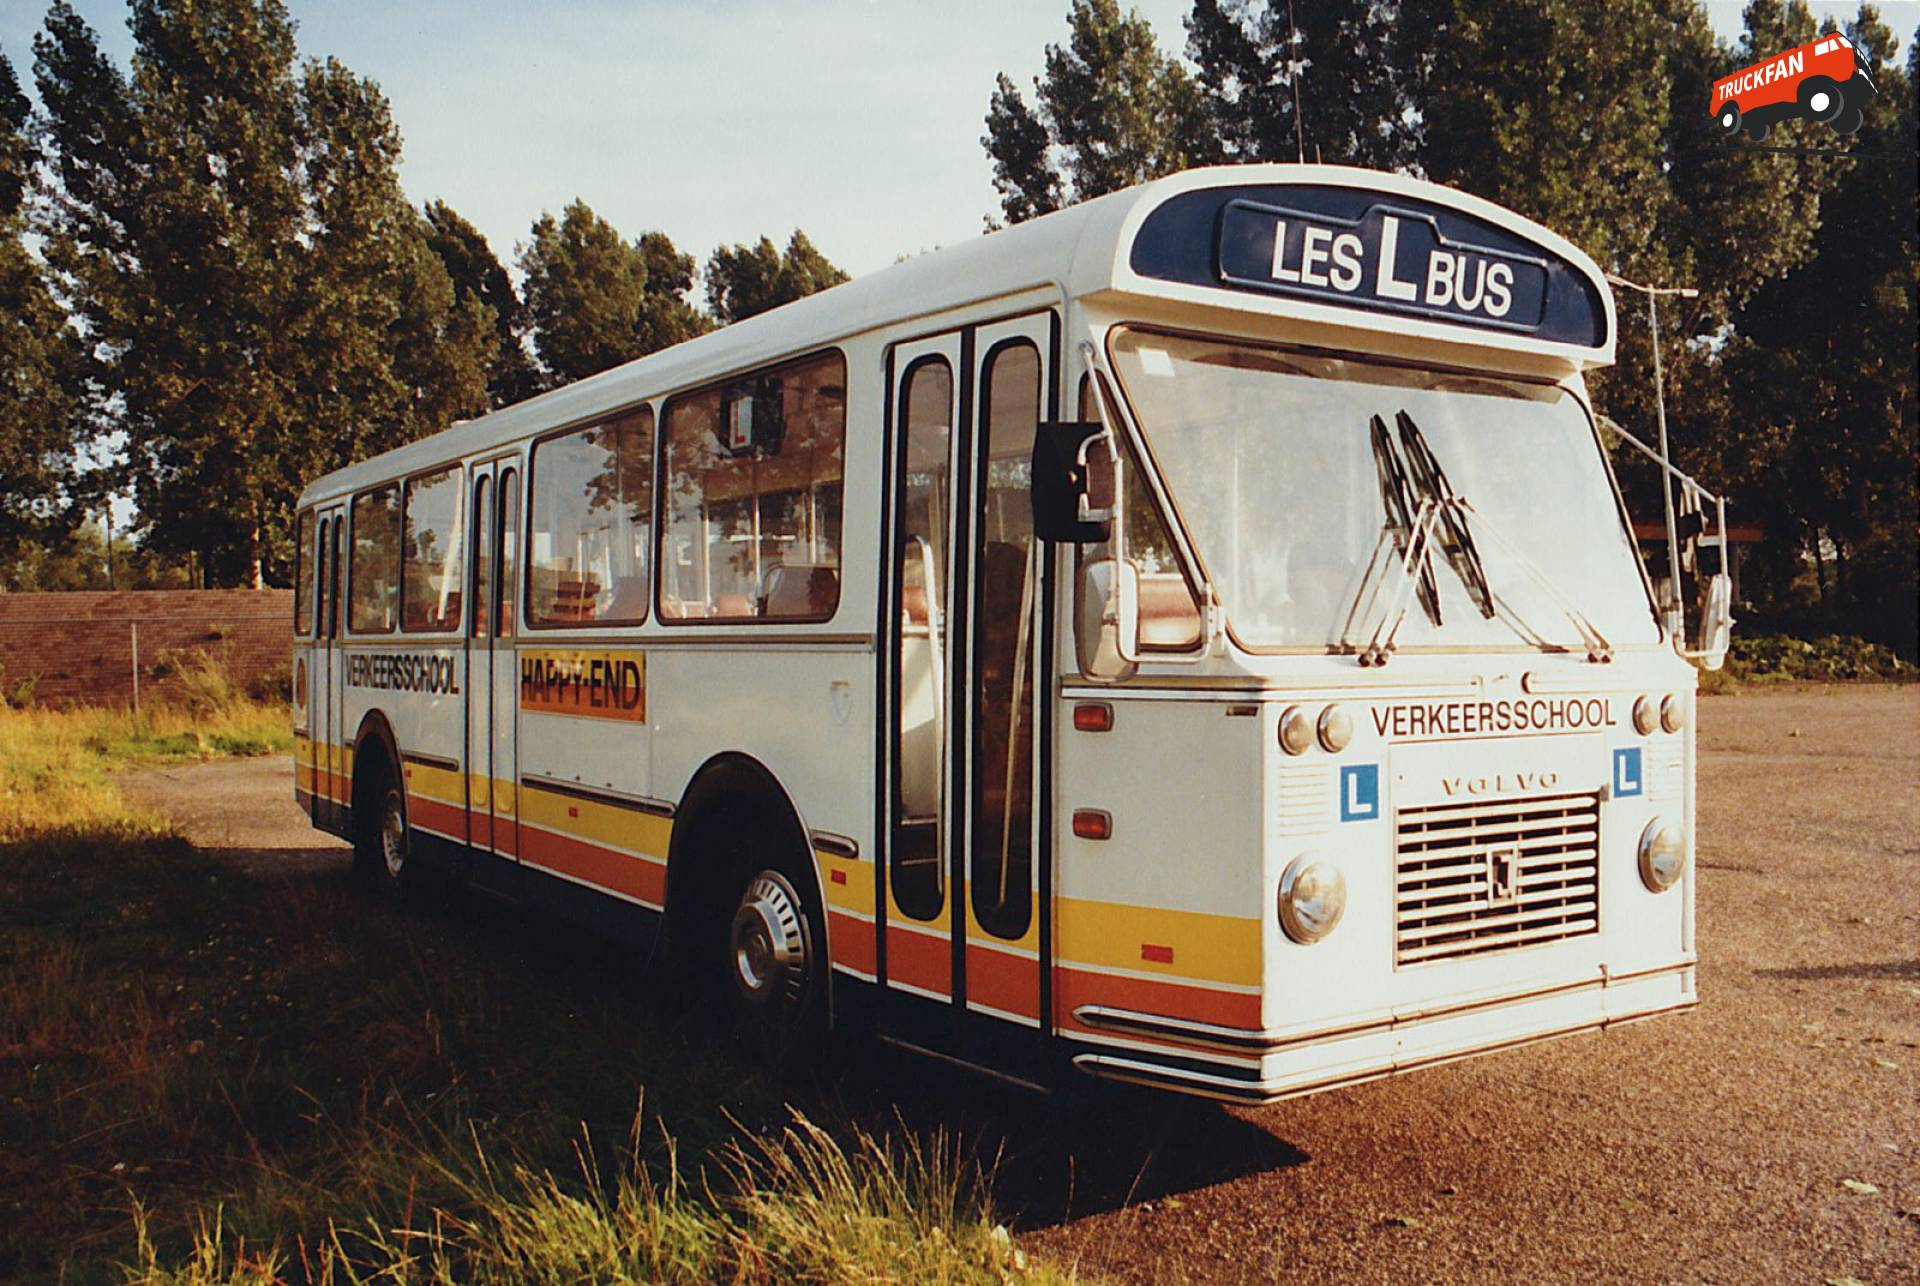 Volvo buschassis